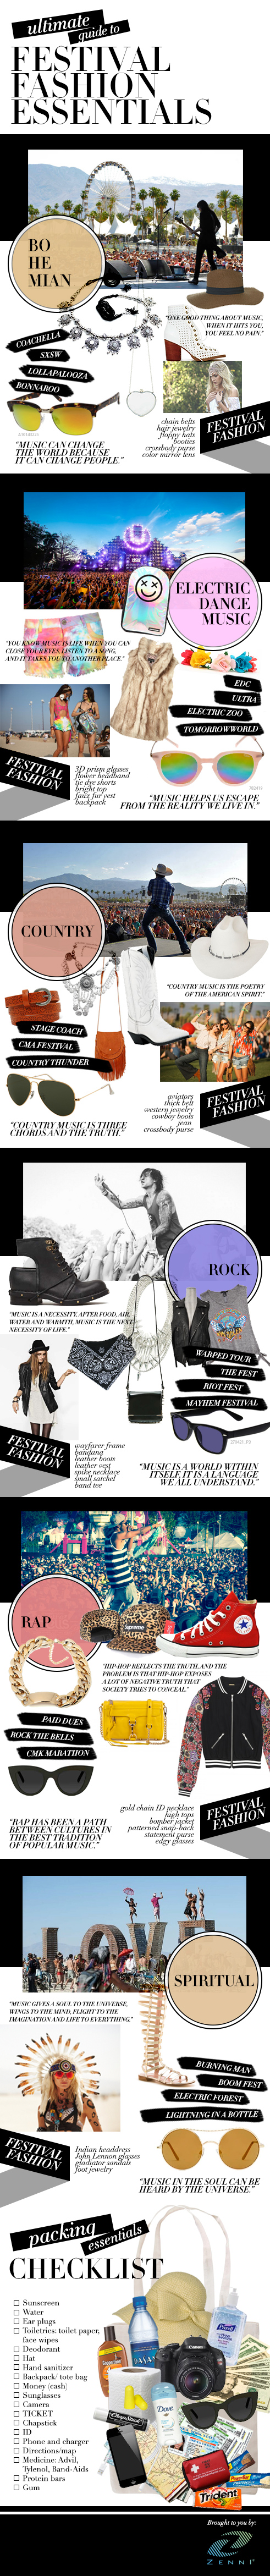 The Ultimate Guide to Music Festival Fashion Essentials